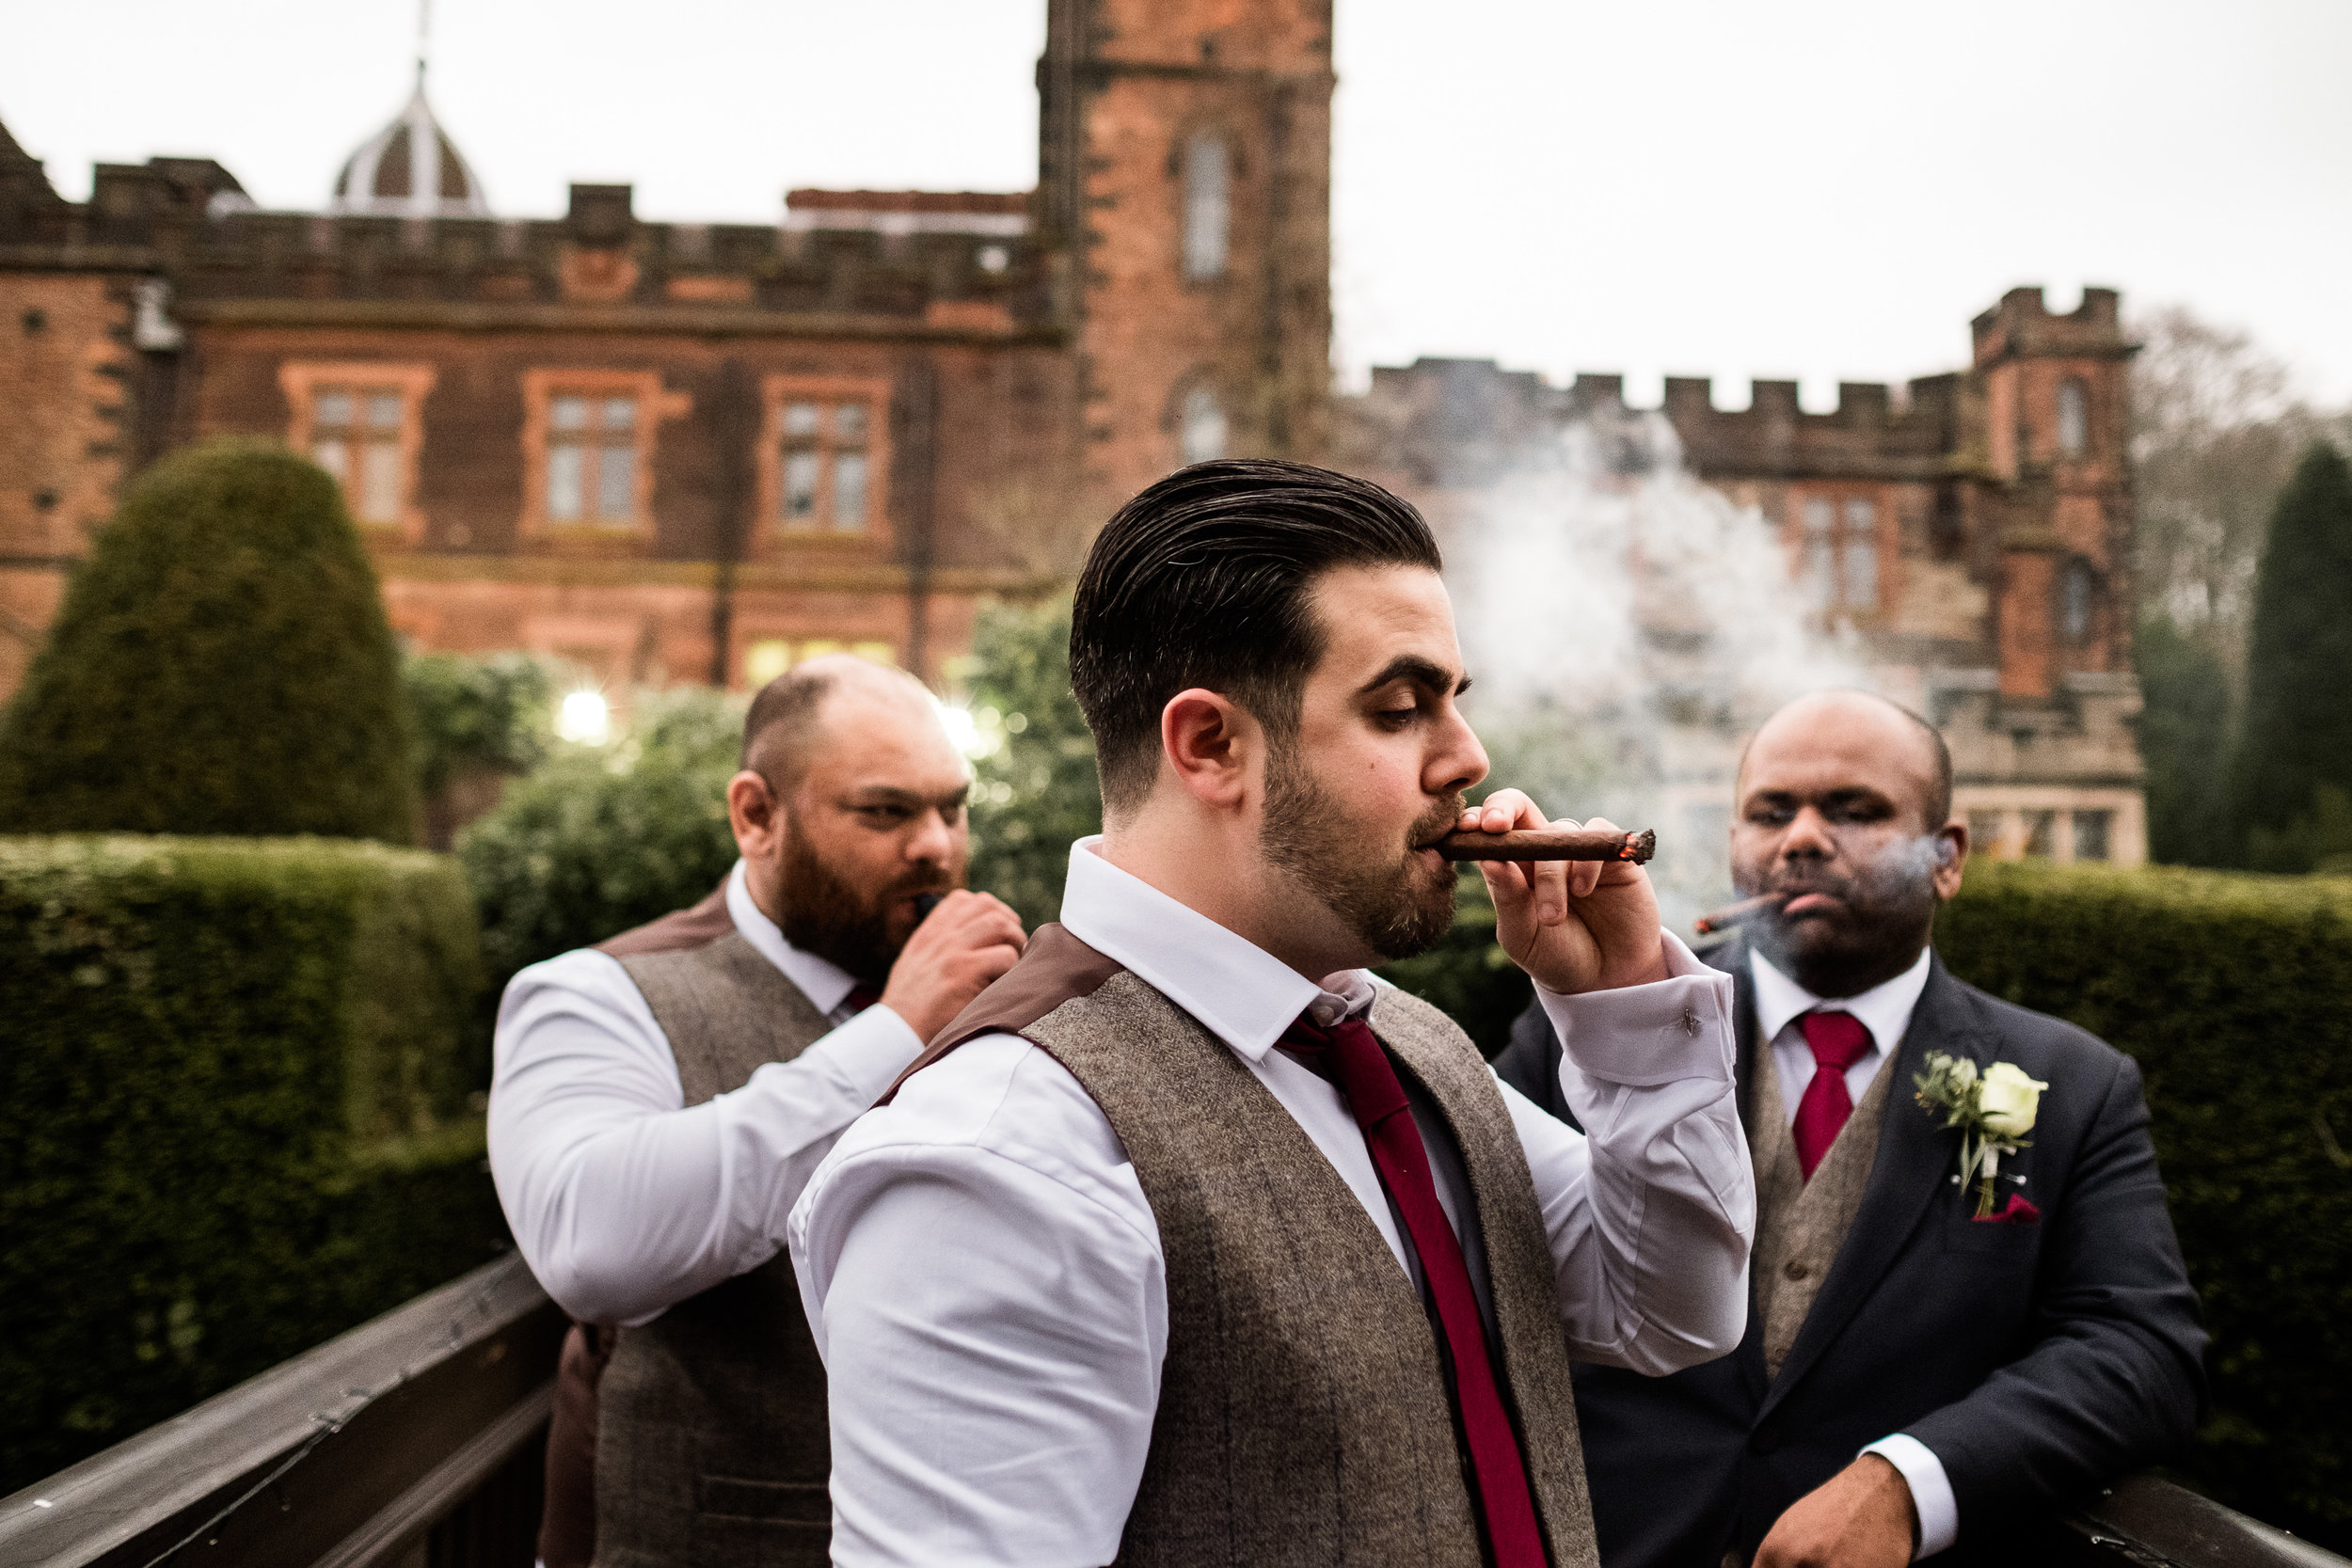 Birmingham Documentary Wedding Photography at New Hall, Sutton Coldfield Turkish Red Candid Reportage - Jenny Harper-75.jpg